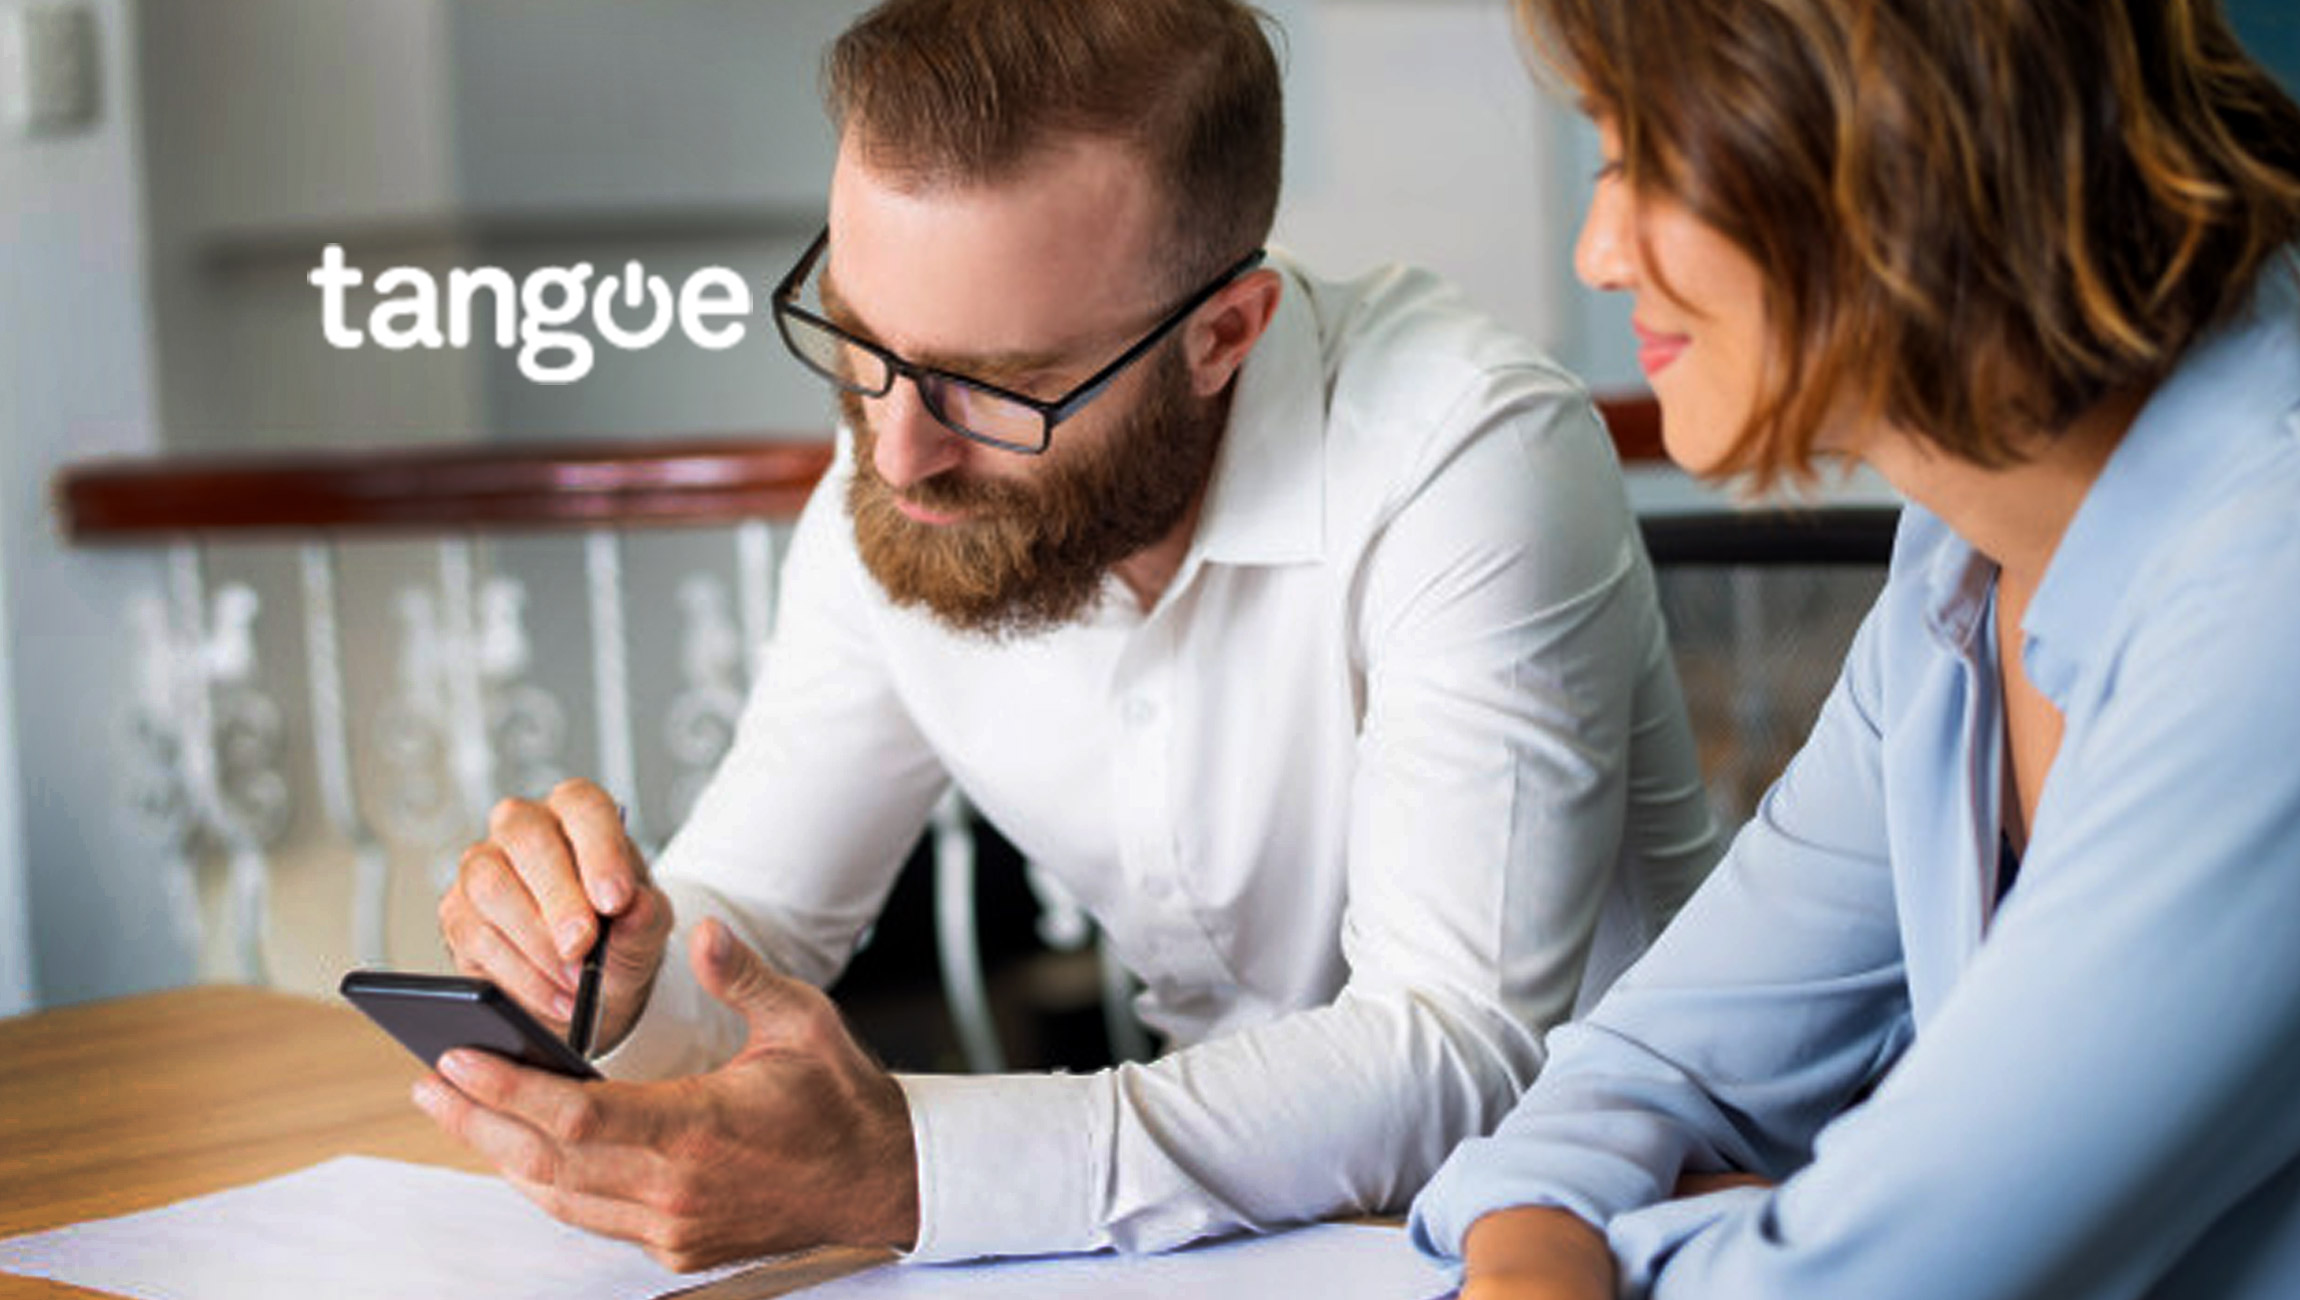 Tangoe : Technology Expense Management Gets a Boost Amid COVID-19